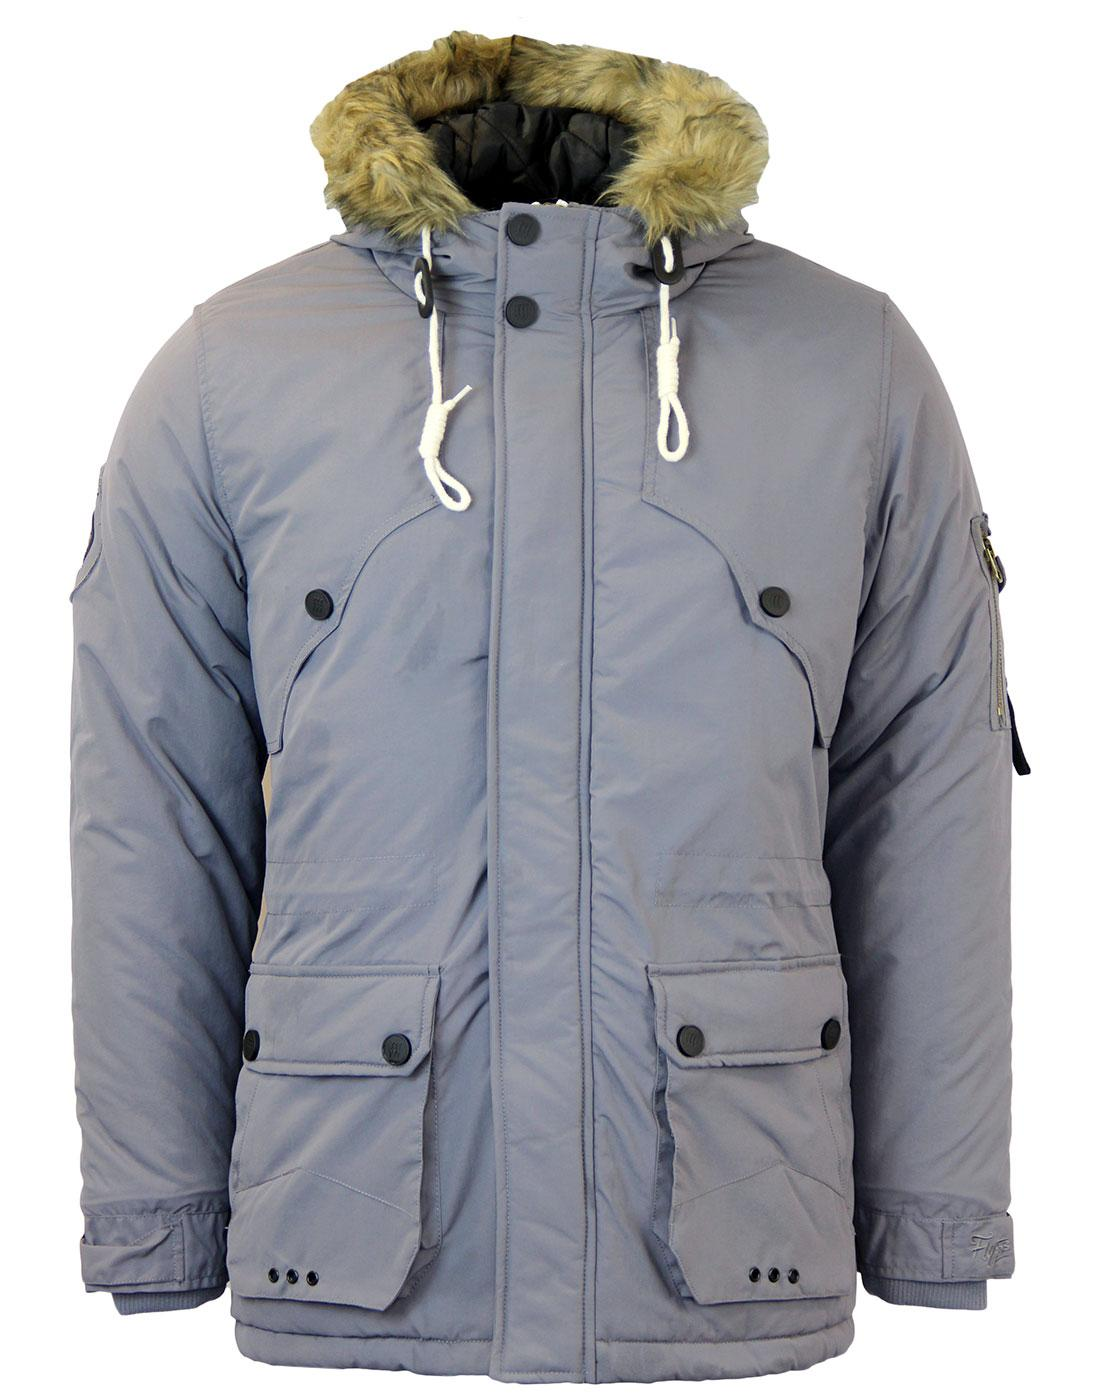 Excalibur FLY53 Mod Fishtail Parka Jacket